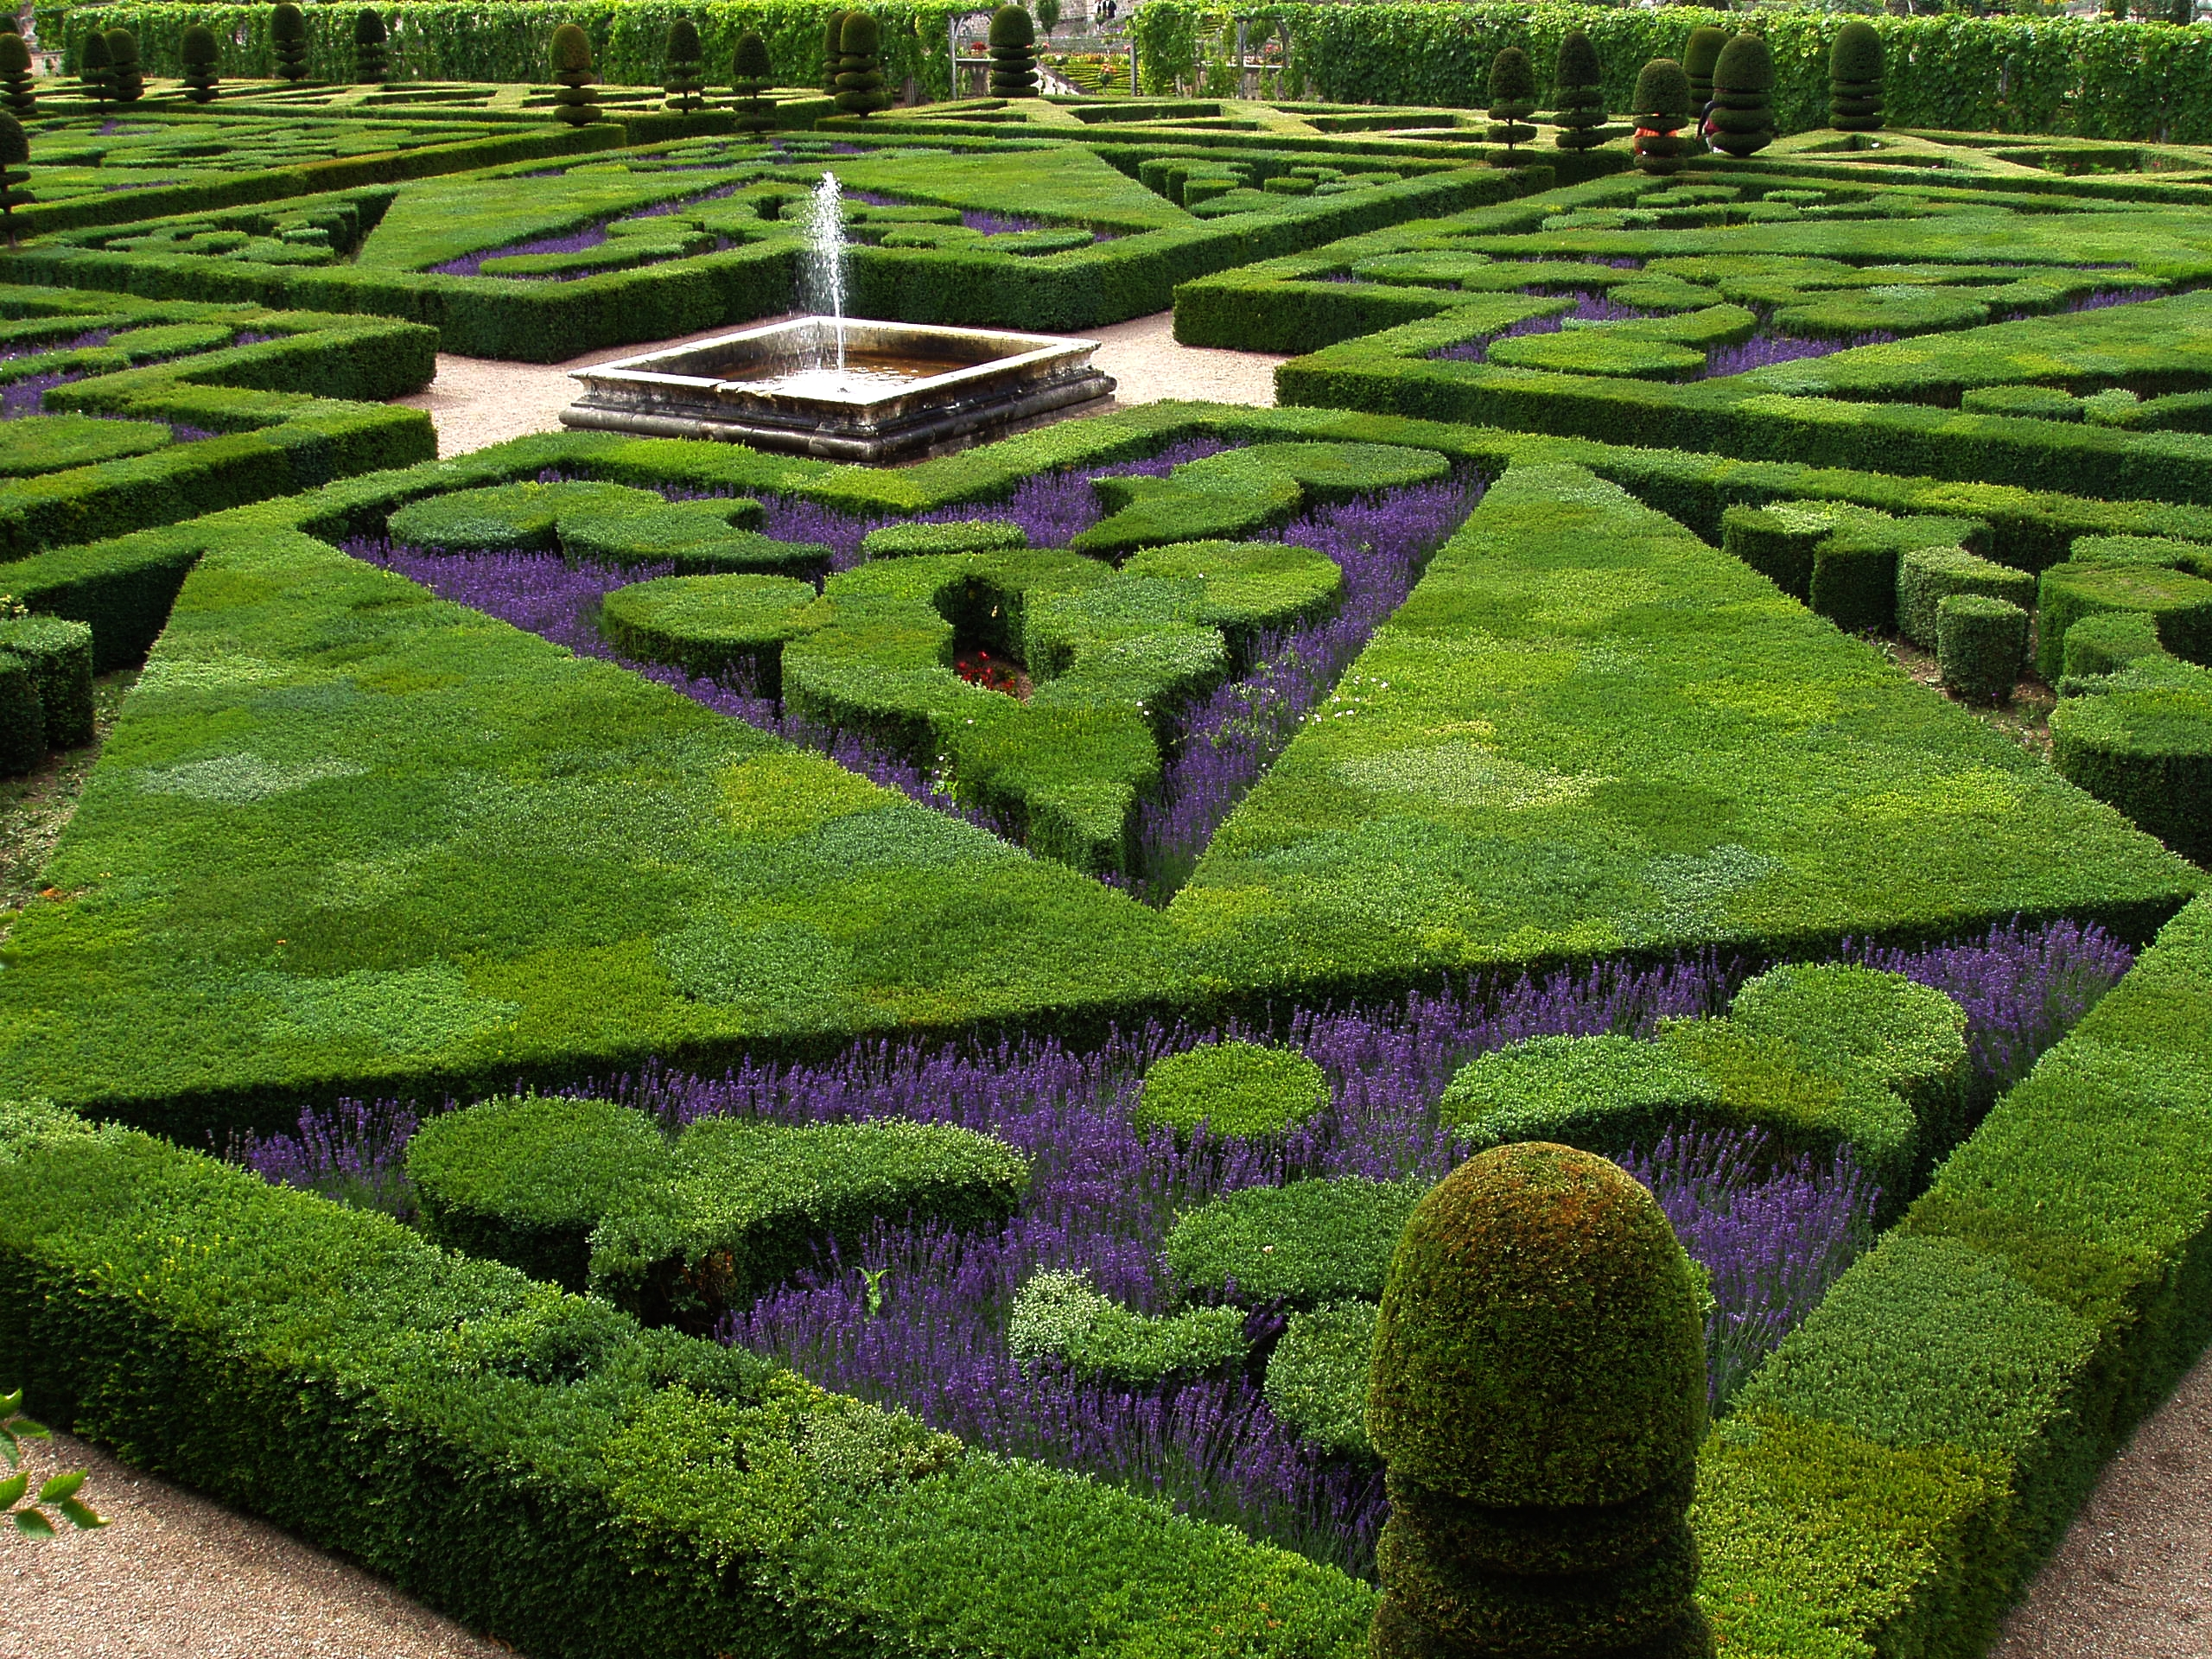 FileFrench Formal Garden in Loire Valleyjpg Wikipedia